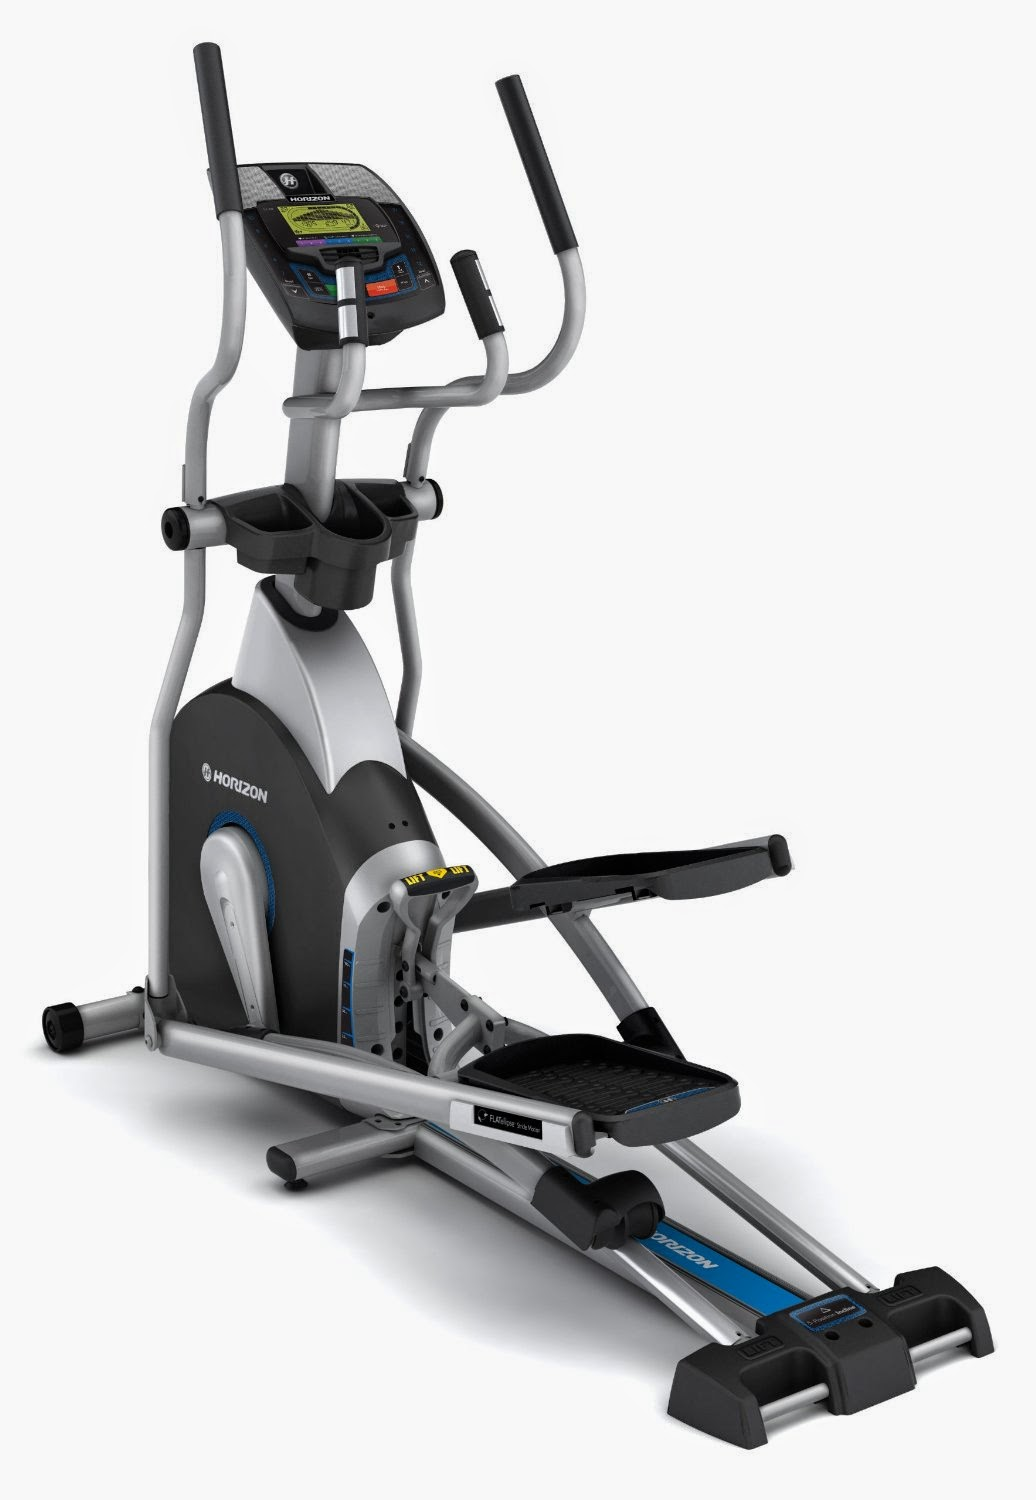 Horizon Fitness EX 69 2 Elliptical Trainer, compared with EX 79 2, see differences